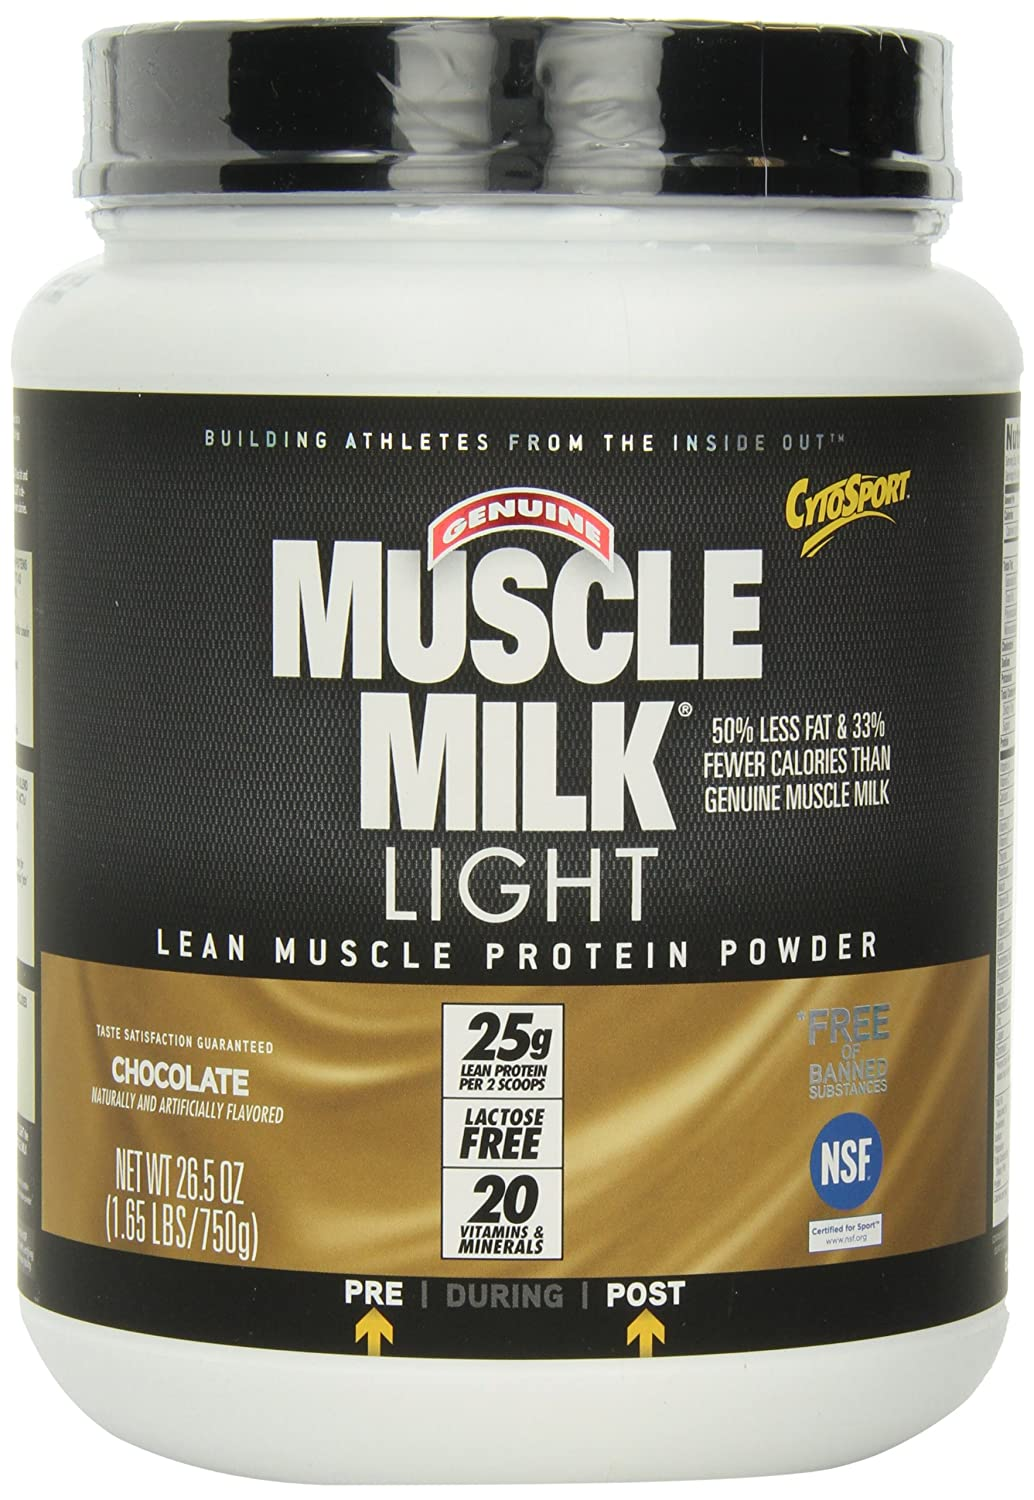 cytosport genuine muscle milk light lean muscle protein powder. Black Bedroom Furniture Sets. Home Design Ideas